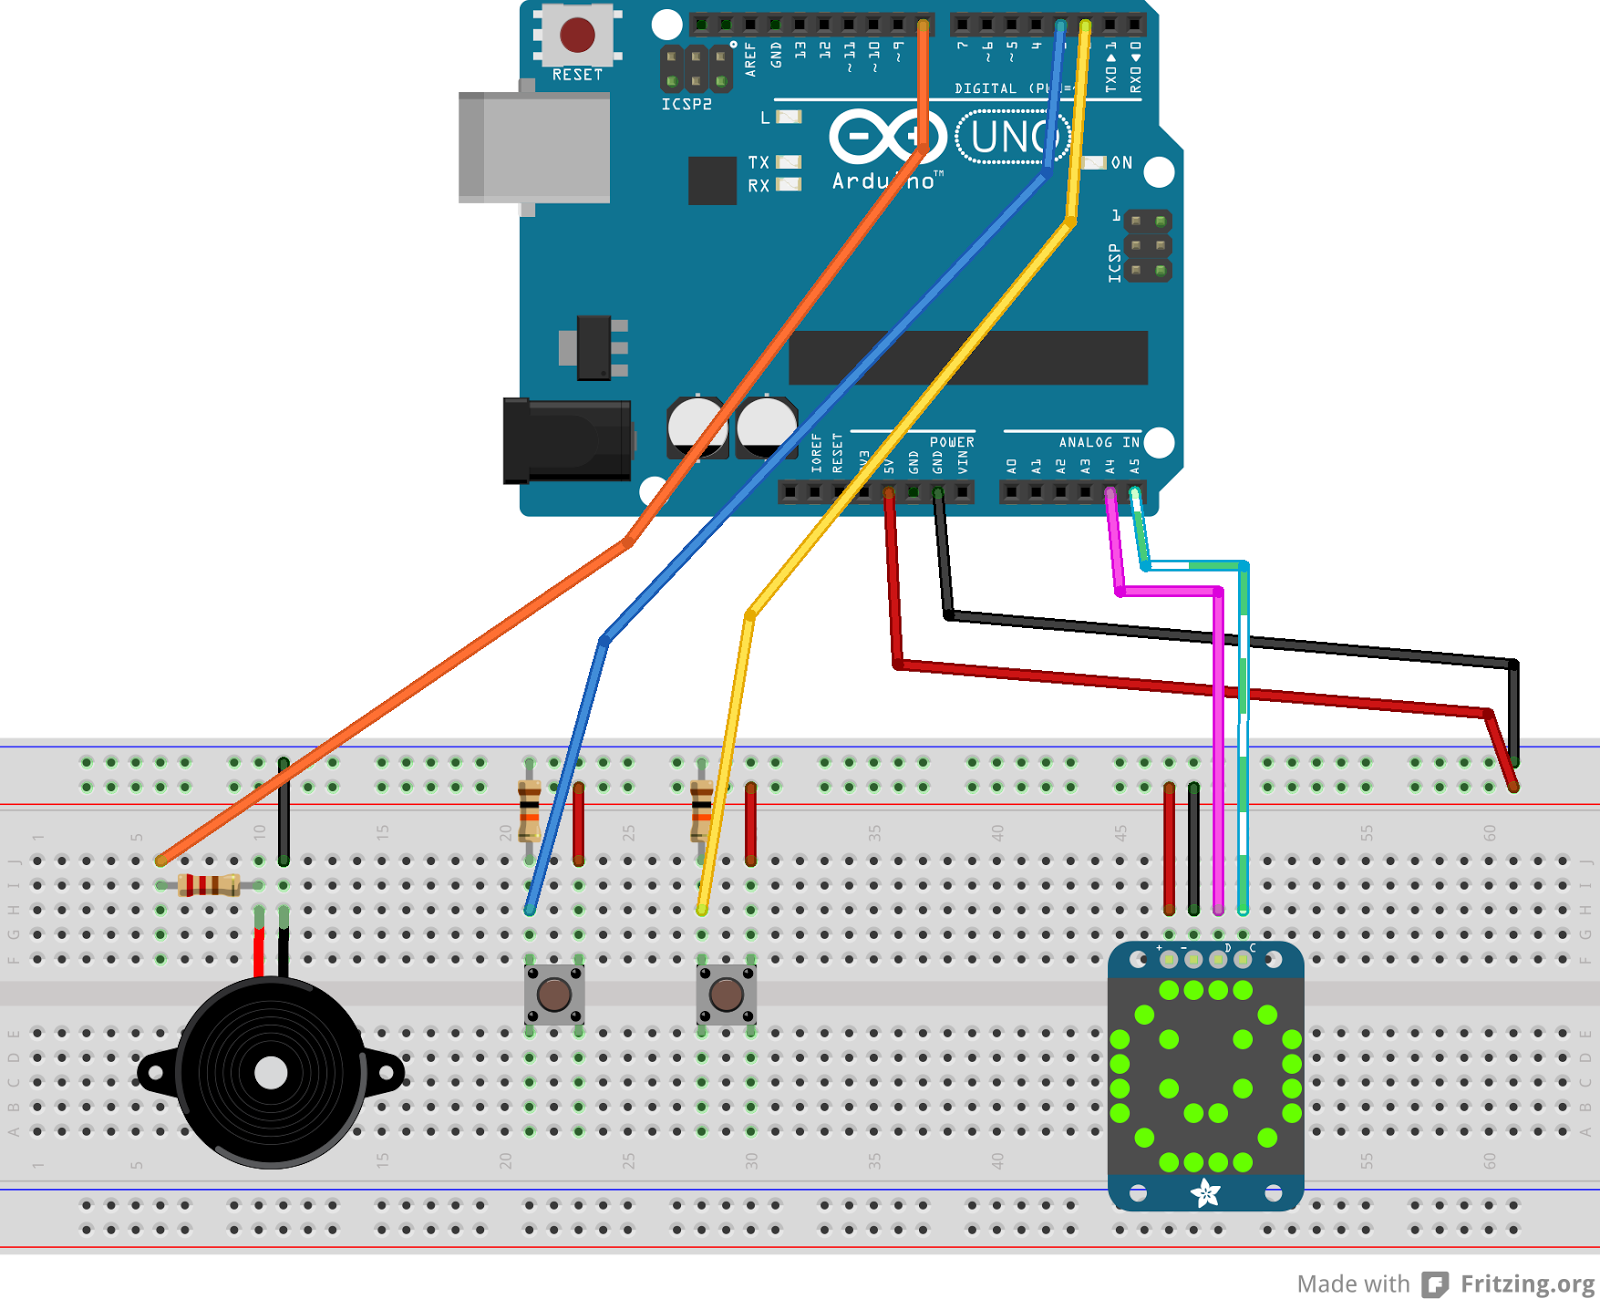 blog.ant0i.net - my little techie blog: Fun with Arduino